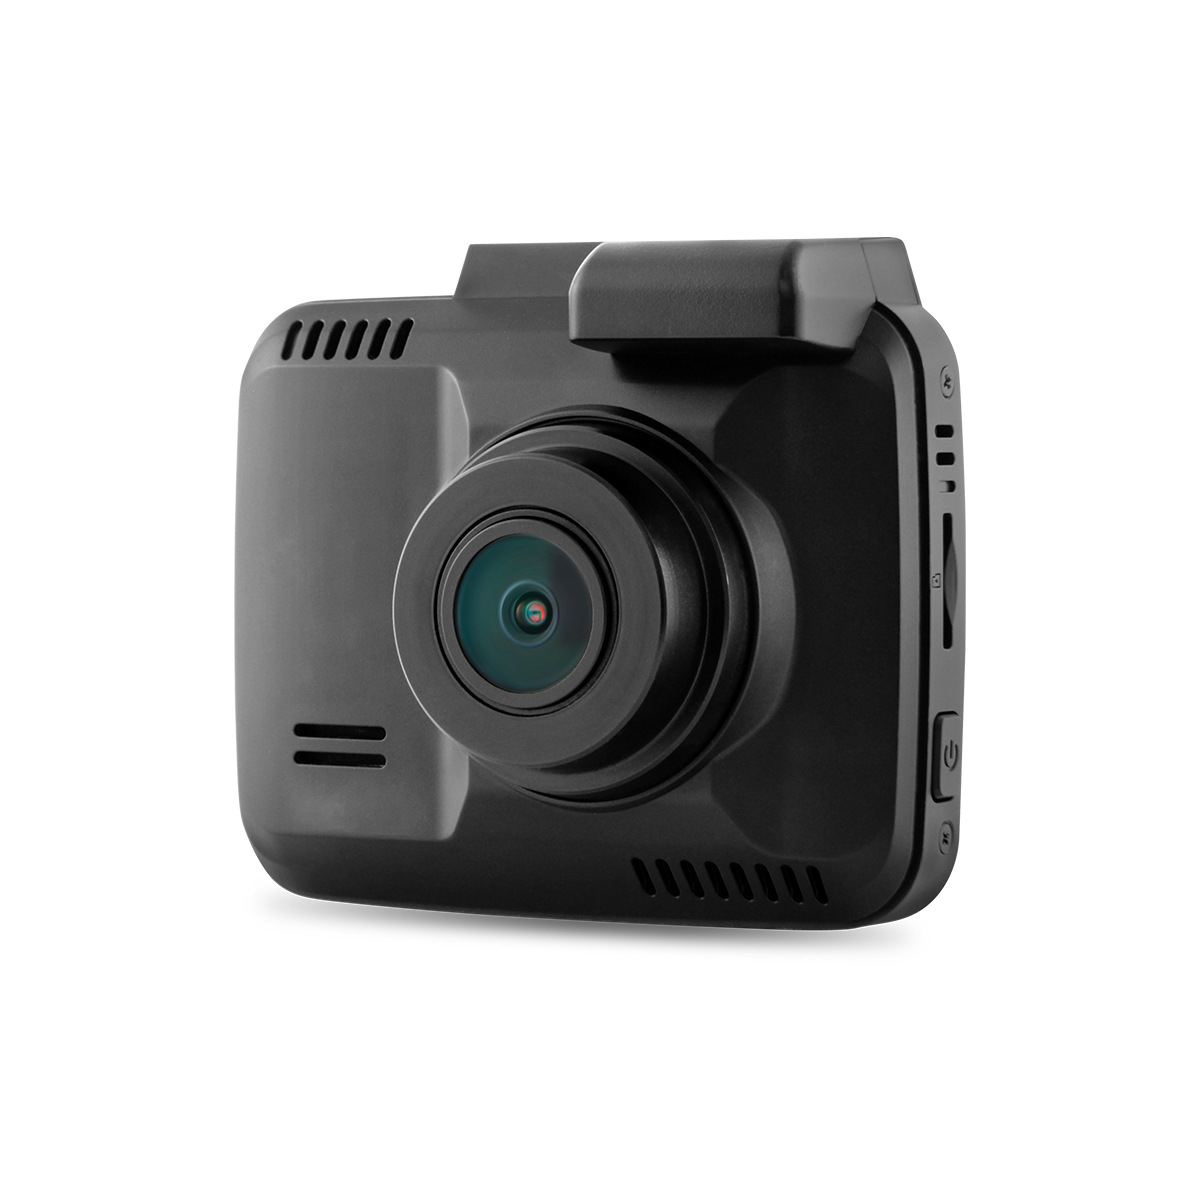 Ultra HD 2160P Wide Angle Lens Wifi 2.4 inch Mini Car Camcorder Car DVR with Built-in GPS (Black) ht200a 1 5 lcd 5 0mp wide angle car dvr camcorder w sd mini usb mini hdmi black blue